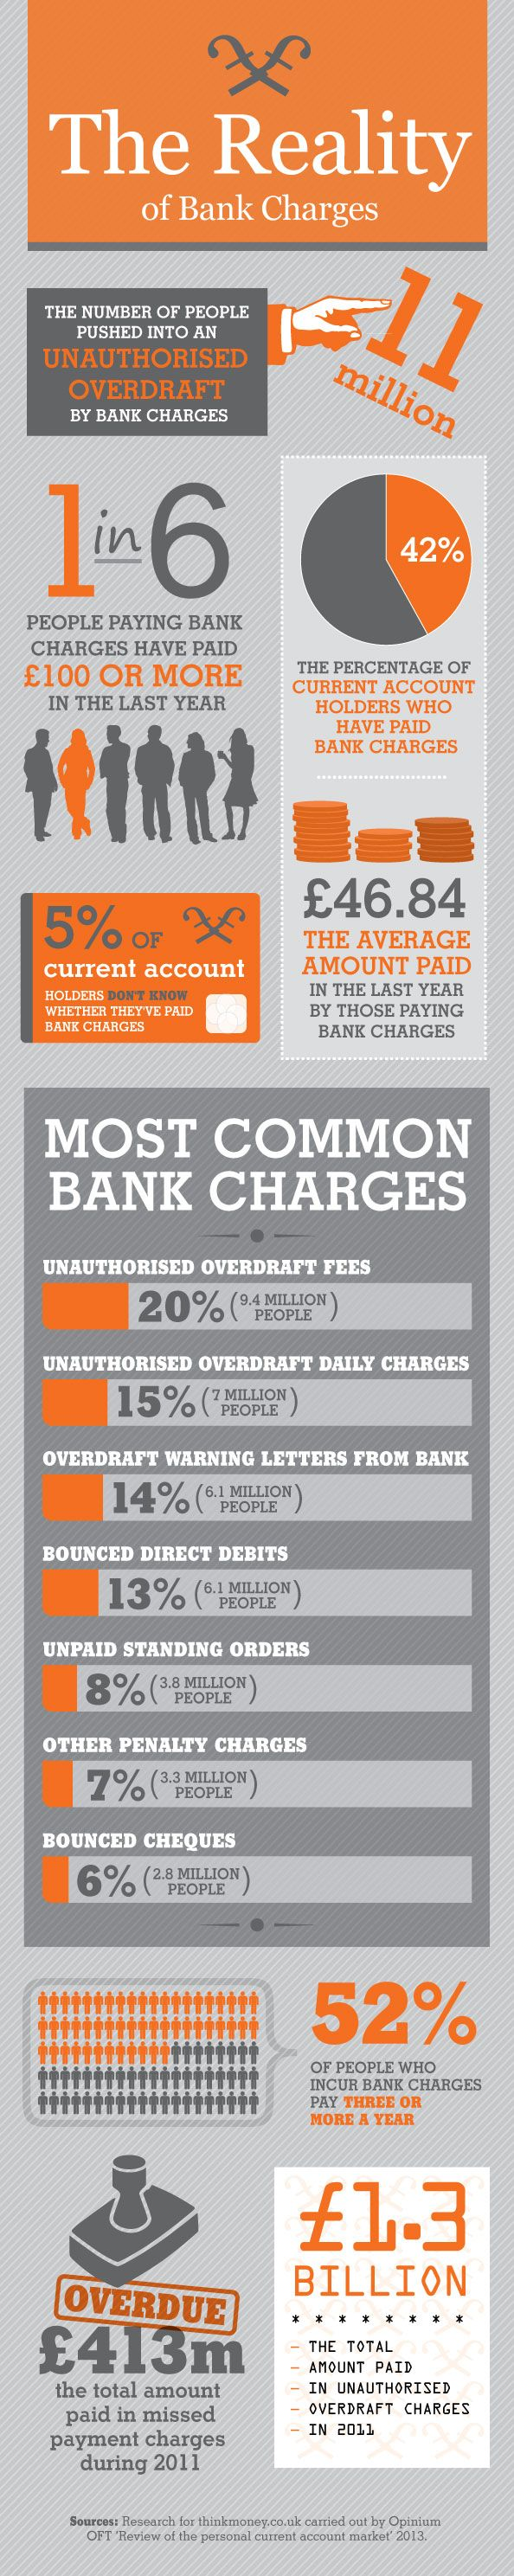 Bank charges cost people in the UK more than one billion pounds every year.